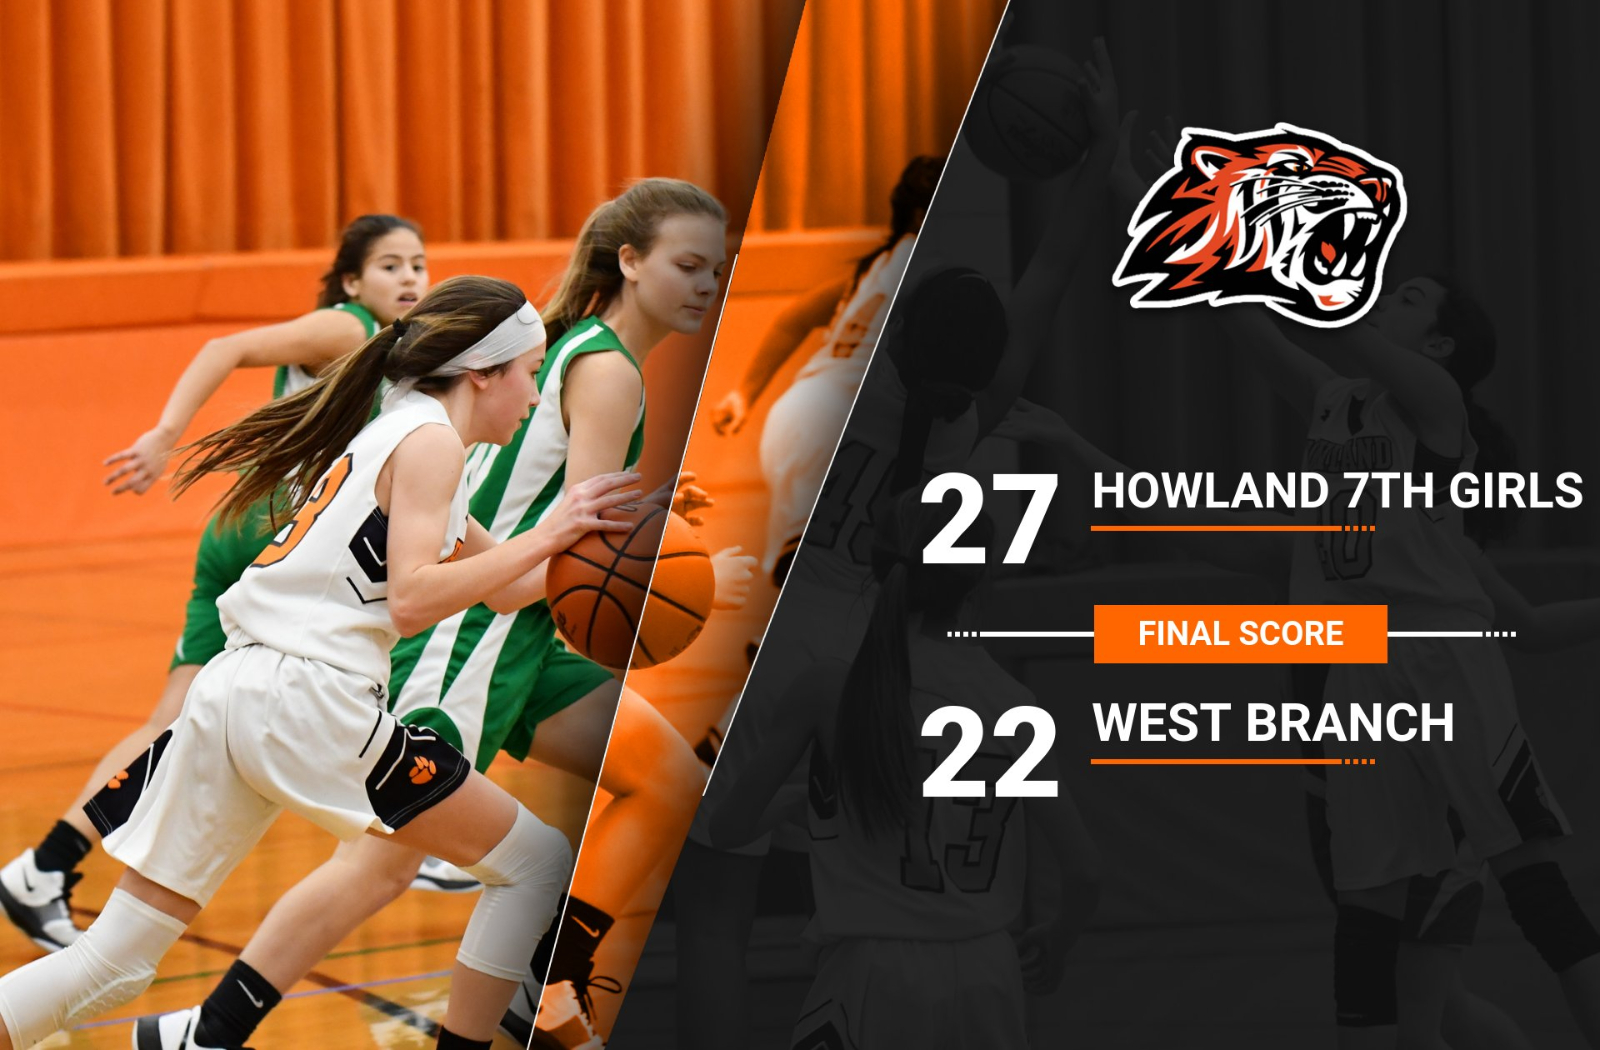 7th Girls Defeat West Branch